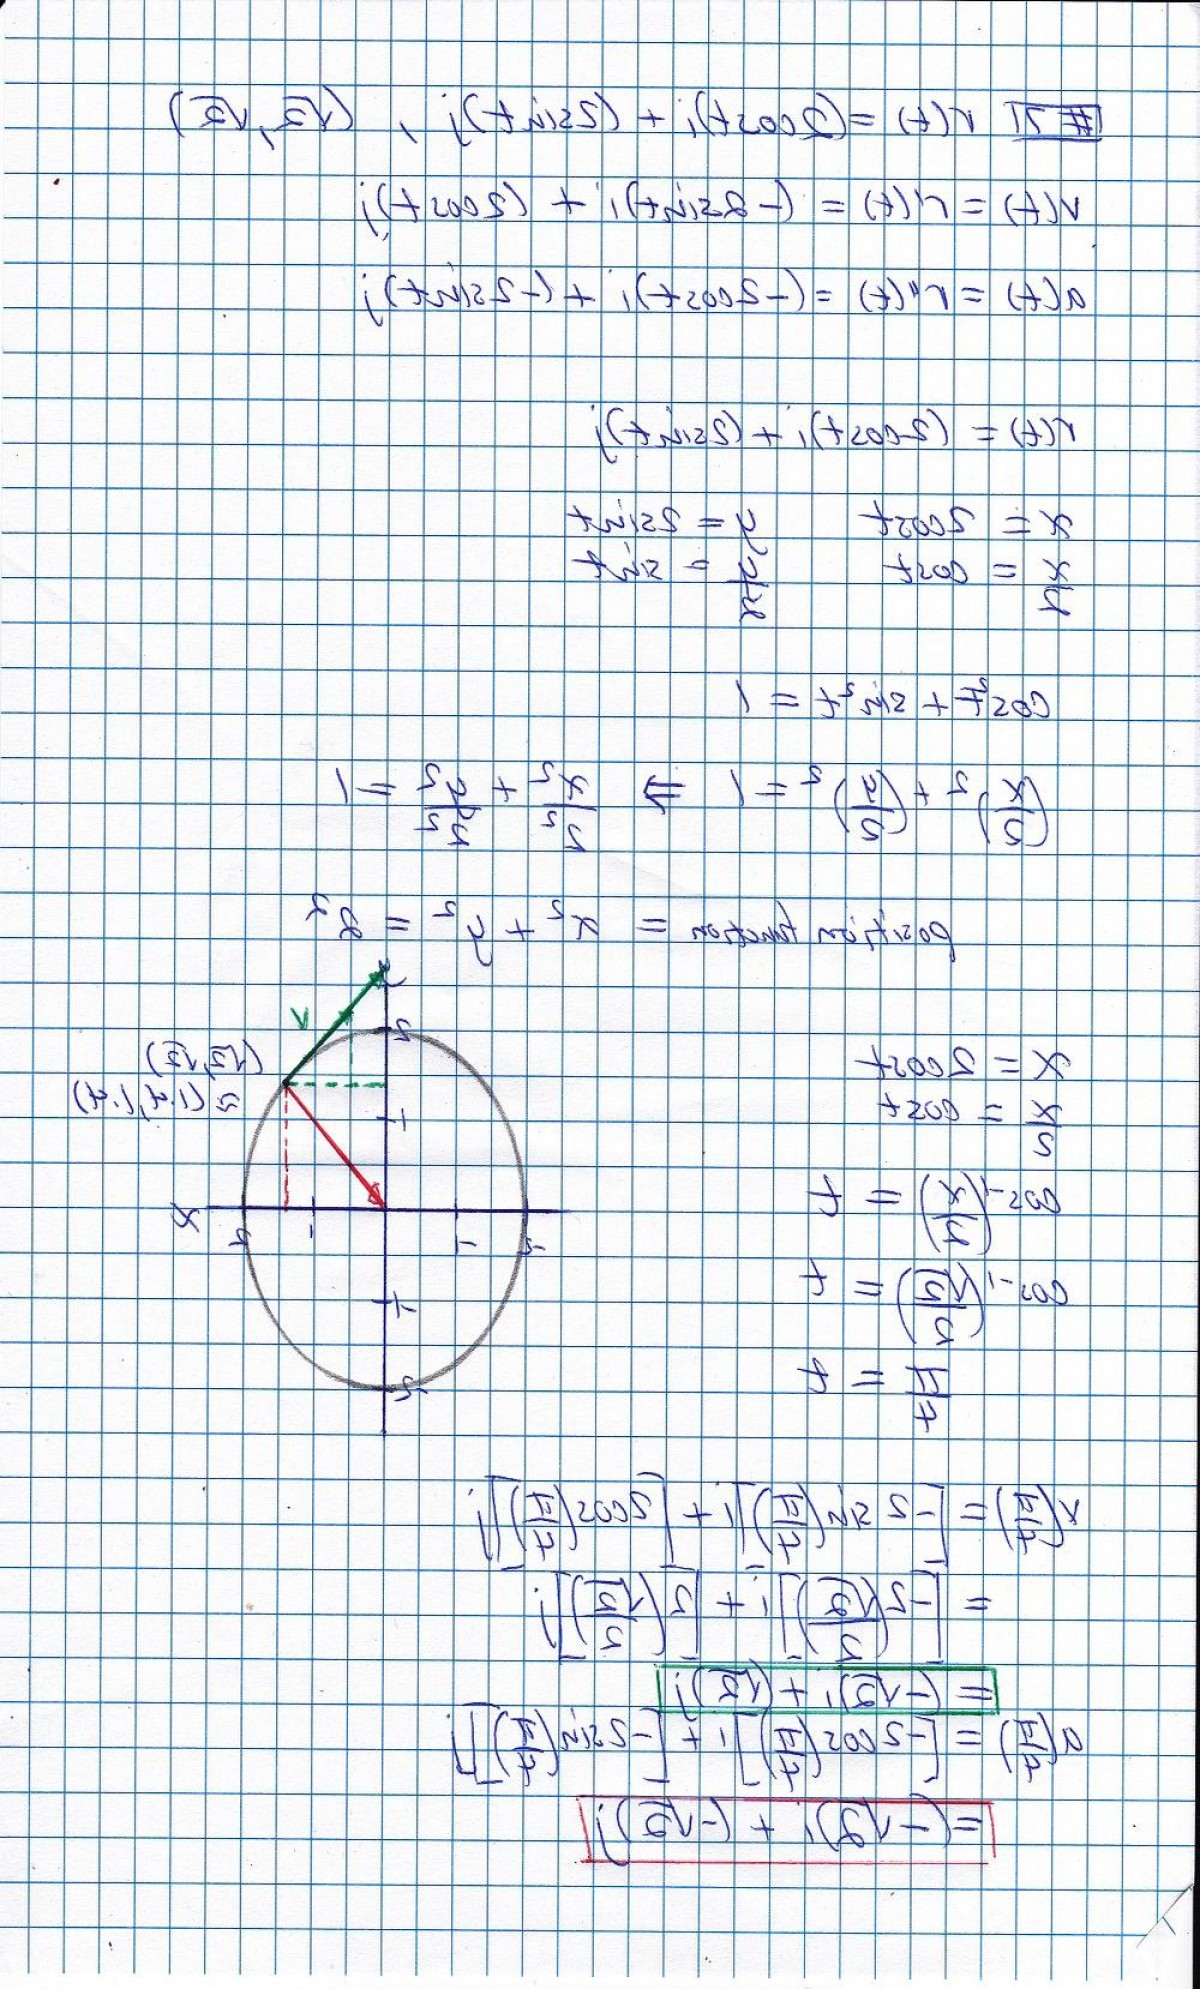 Graphing Vectors 2 1: The Position Vector R Describes The Path Of An Object Moving In The Xy Plane Position Vector Rt Co